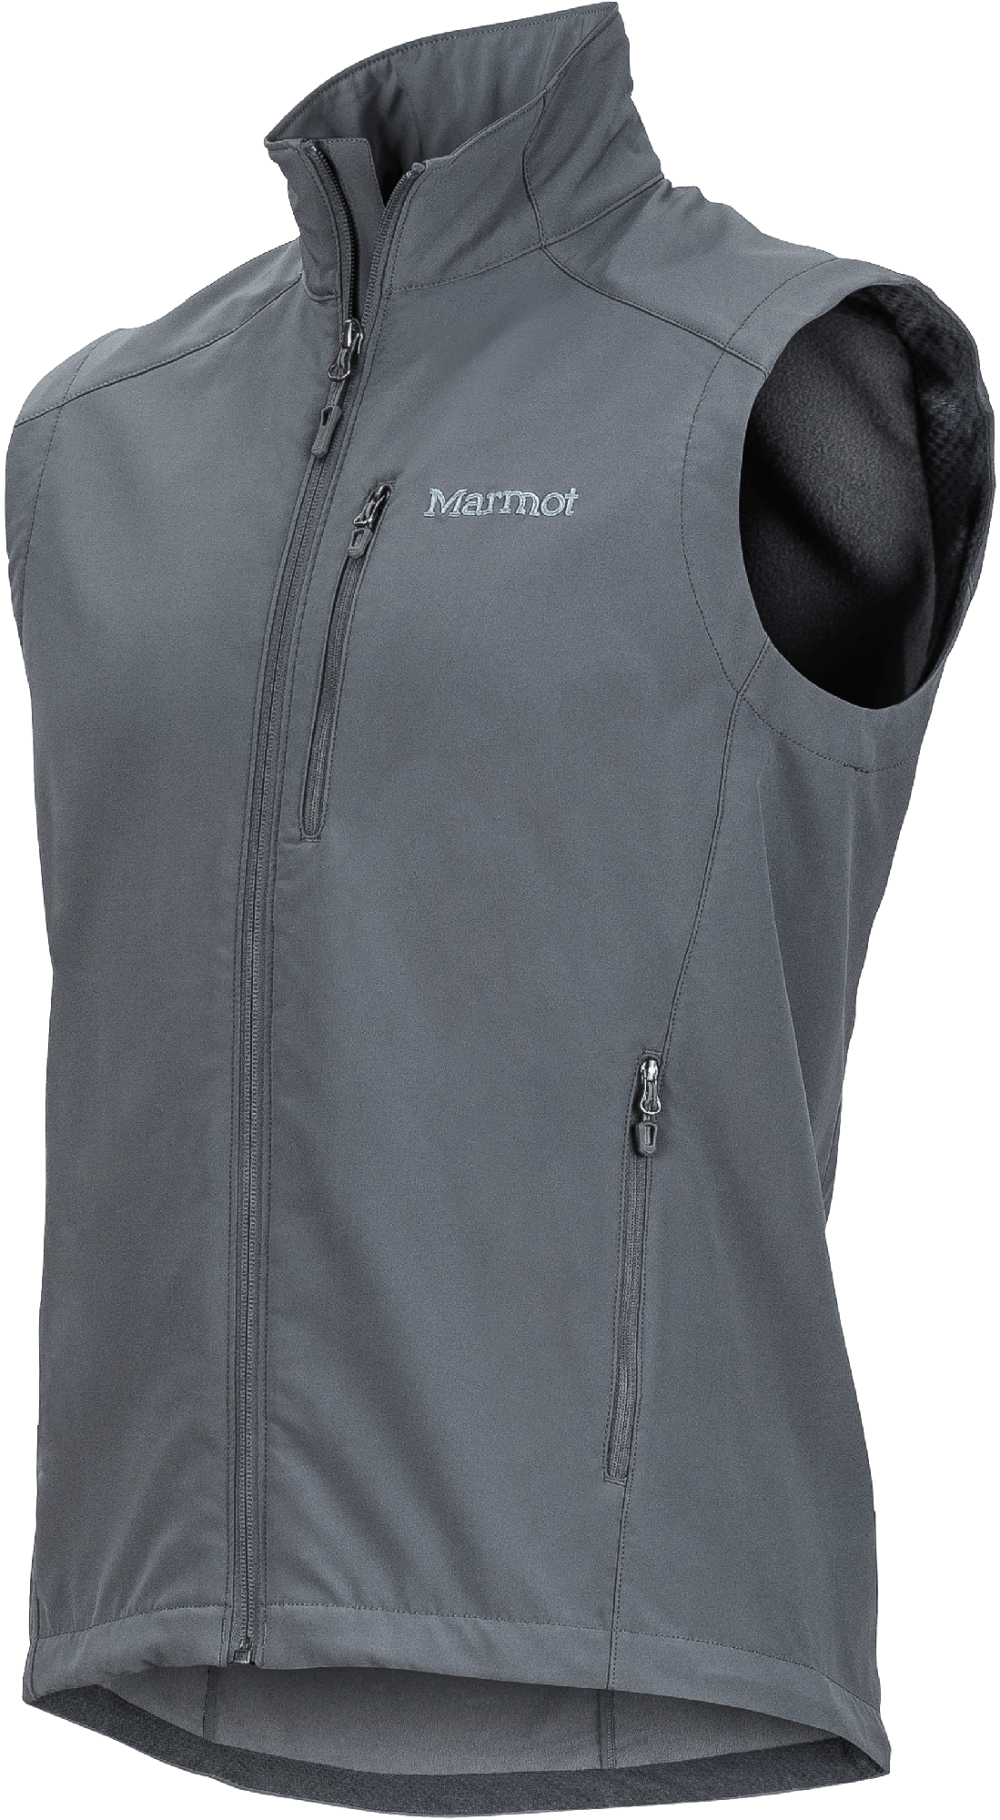 Жилет MARMOT approach softshell vest (размер L) - 19037